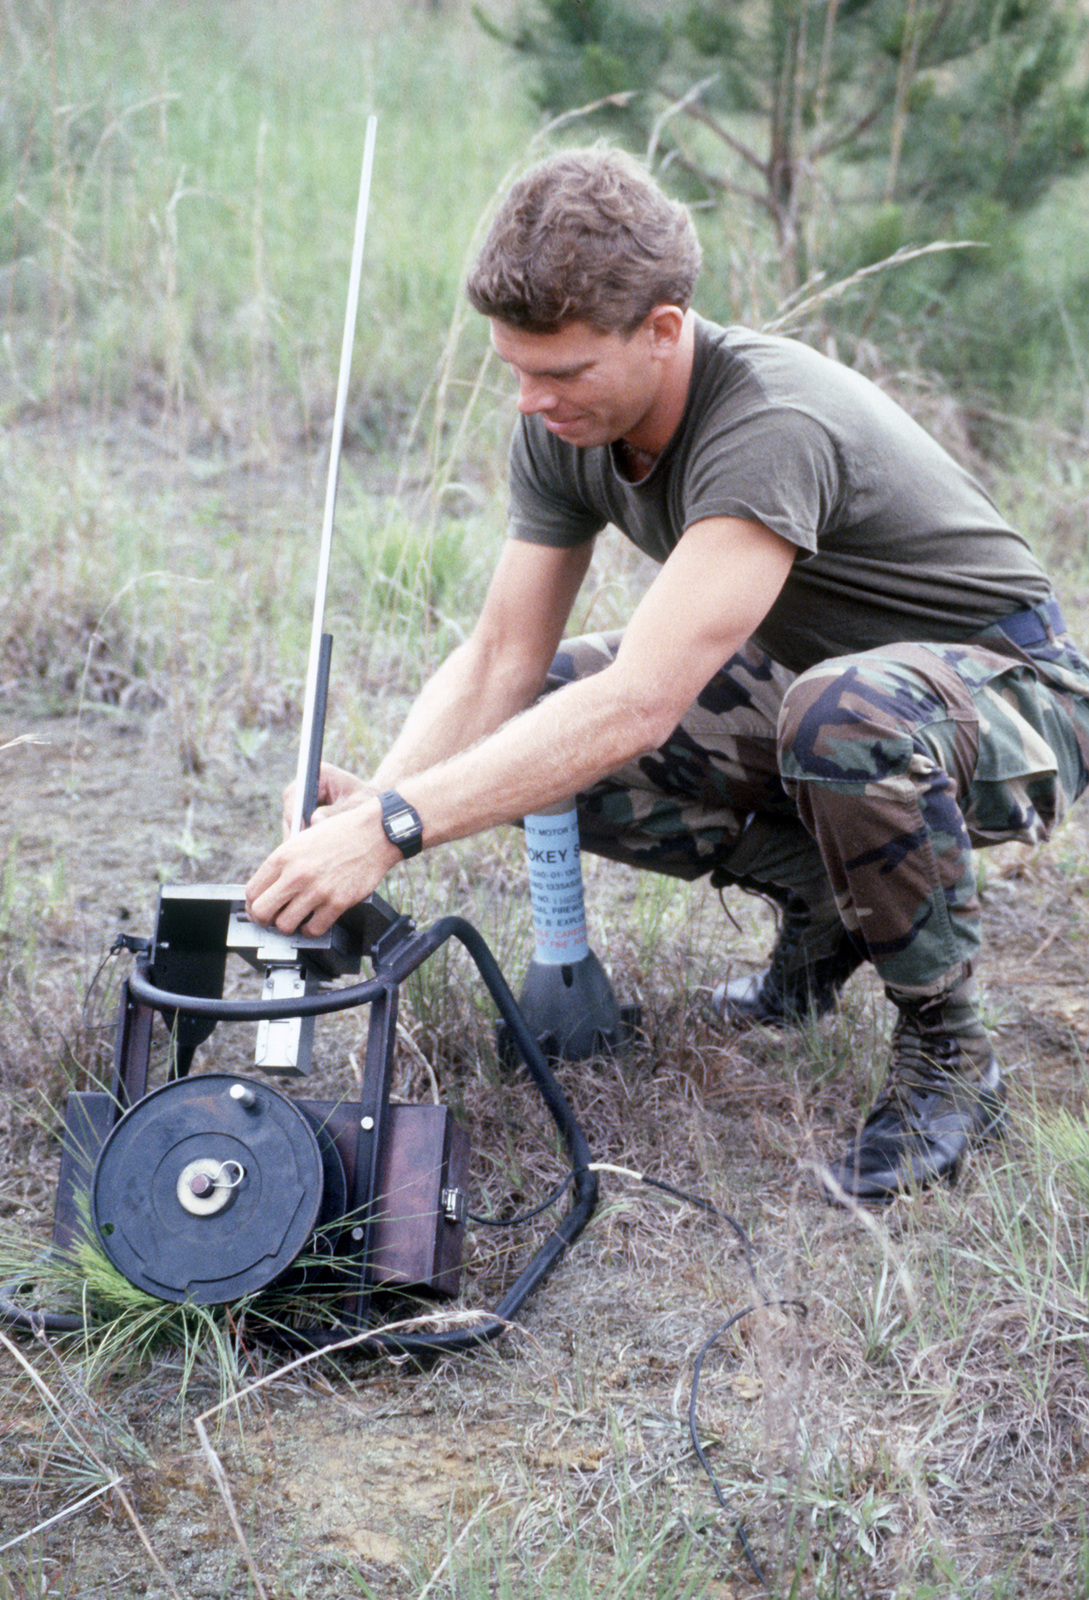 Sergeant (SGT) Tony Ramsay, 56th Combat Support Squadron, sets up a GTR-18A Smokey Sam surface-to-air missile simulator during Exercise PATRIOT PEACH '86